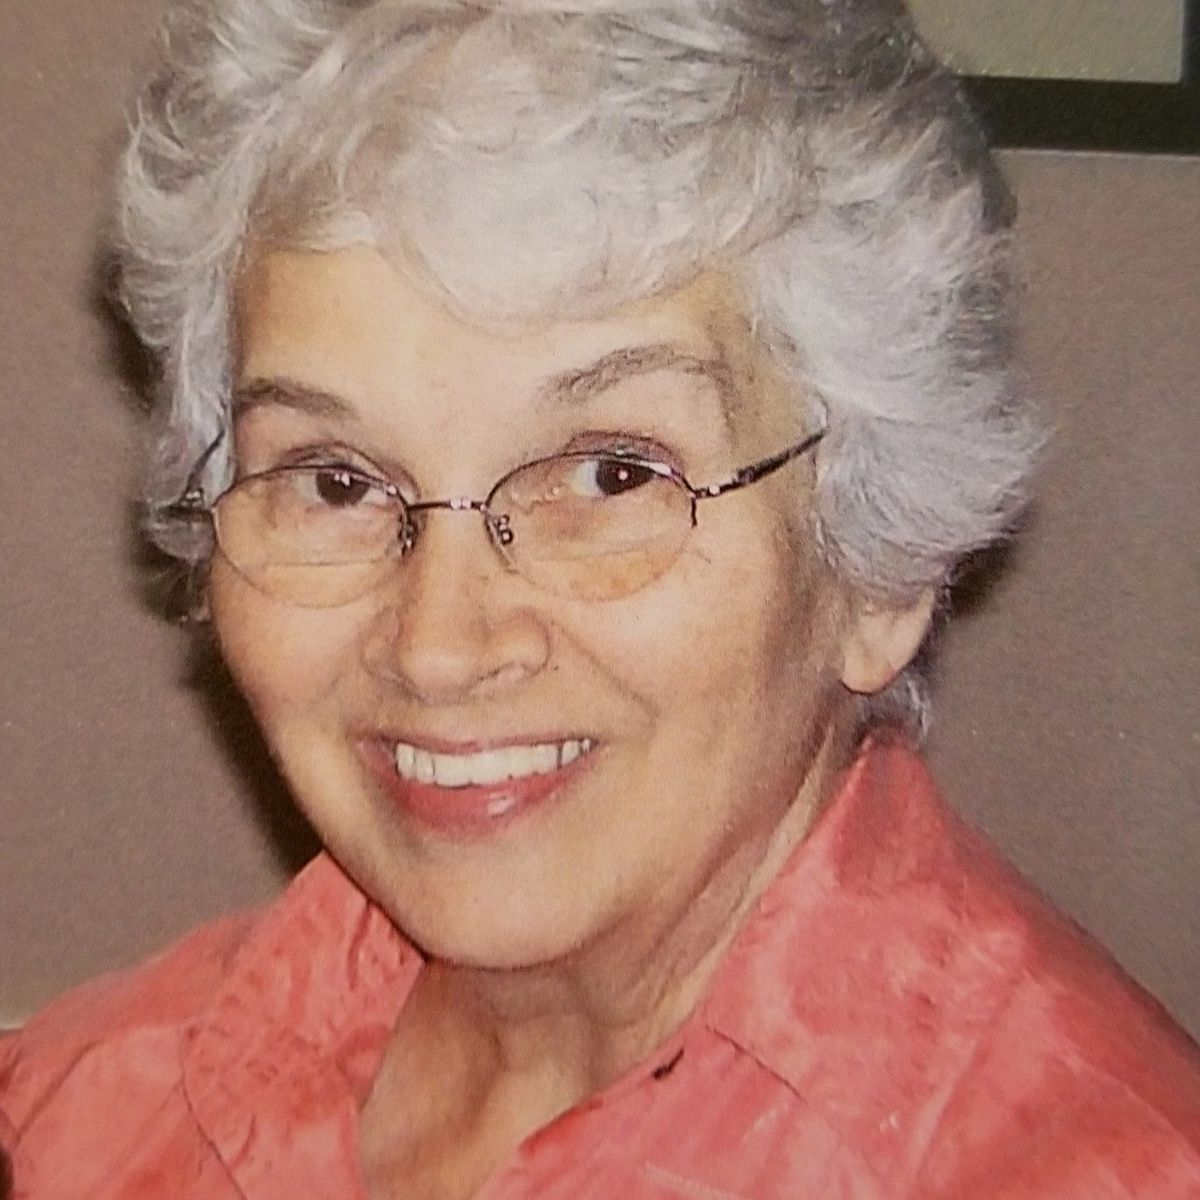 Rita E. Ghostlaw, 76, of Fort Covington